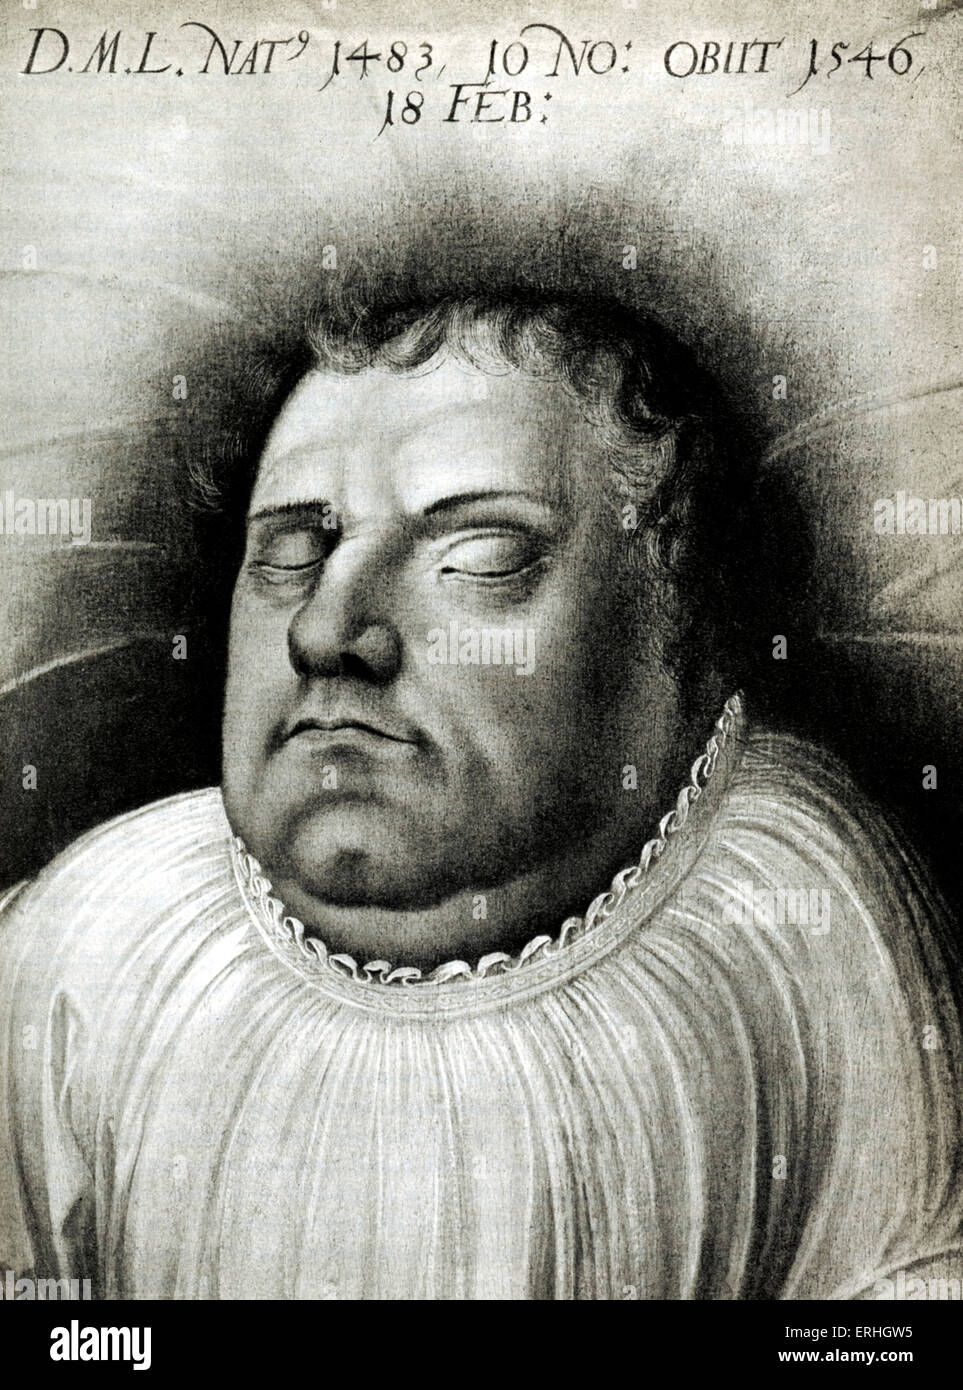 Martin Luther by Lucas Cranach. Church reformer. 10 November 1483 - 18 February 1546 - Stock Image